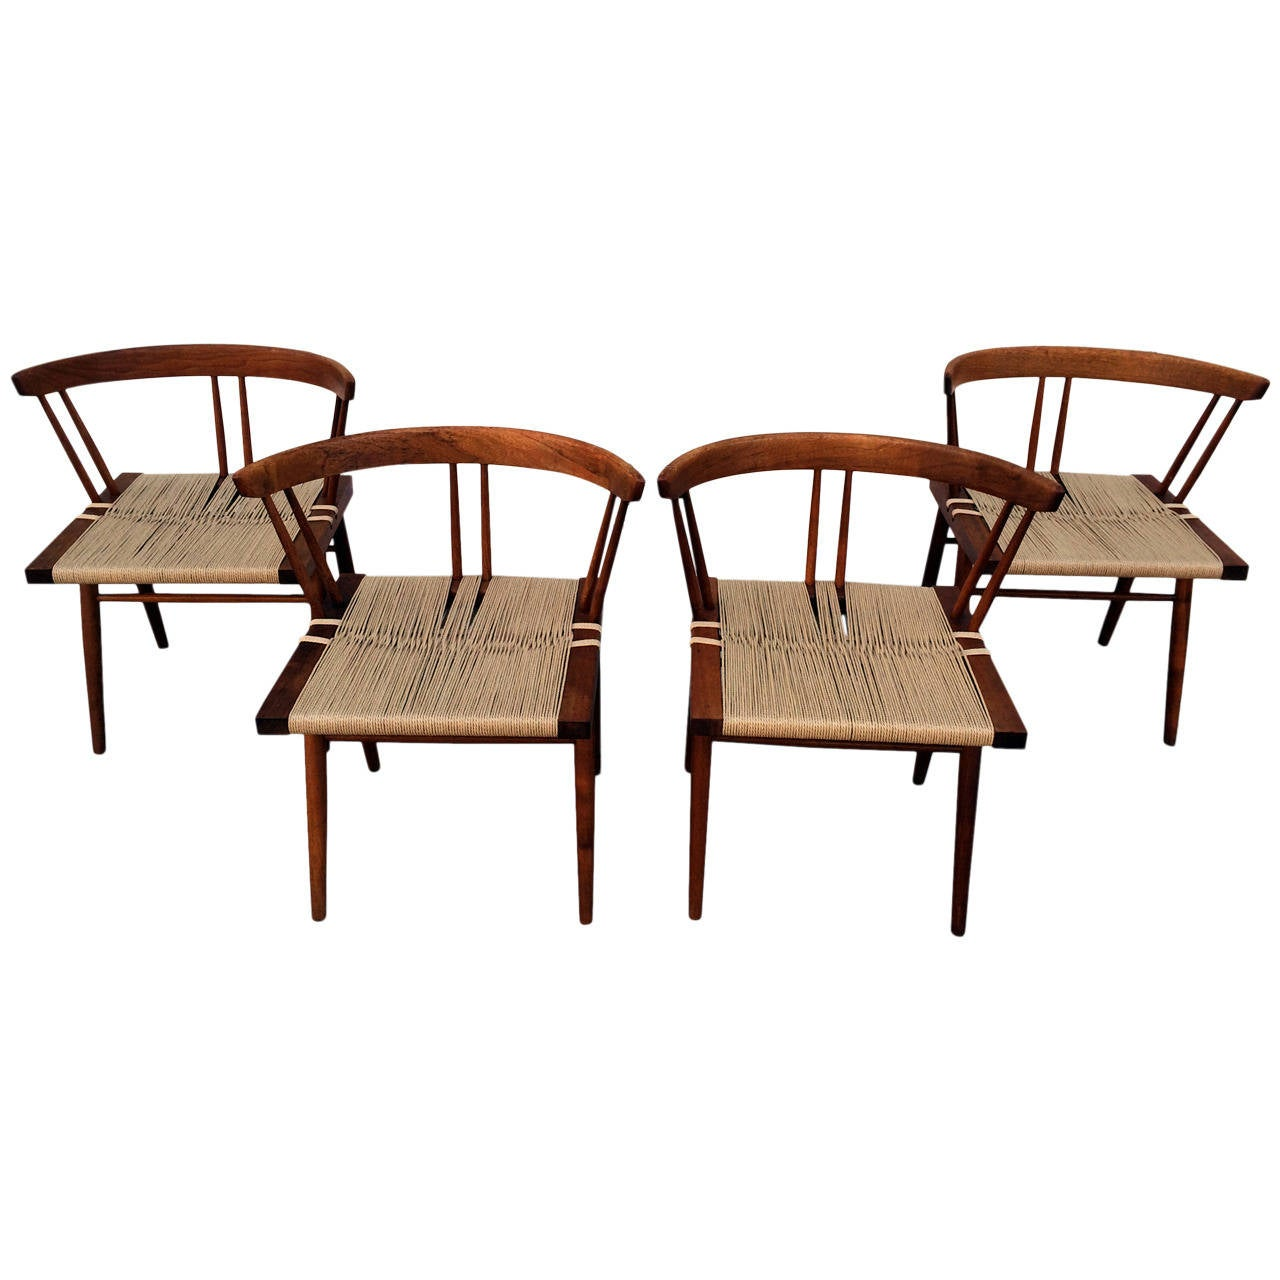 Set Of Four Walnut And Woven Seat Chairs By George Nakashima 1